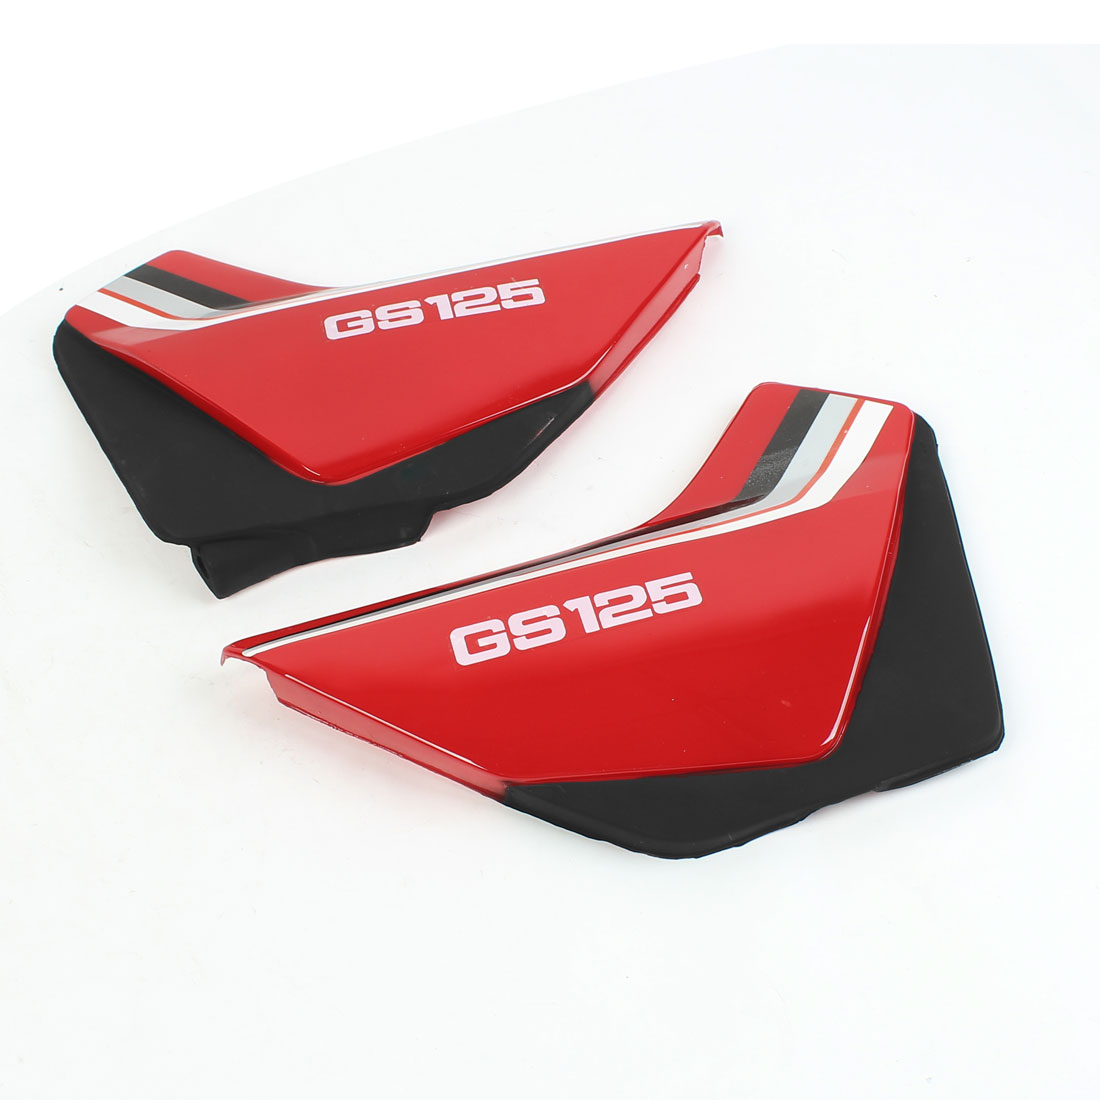 Pair Red Black Plastic Left Right Motorcycle Side Cover Replacing Part for GS125